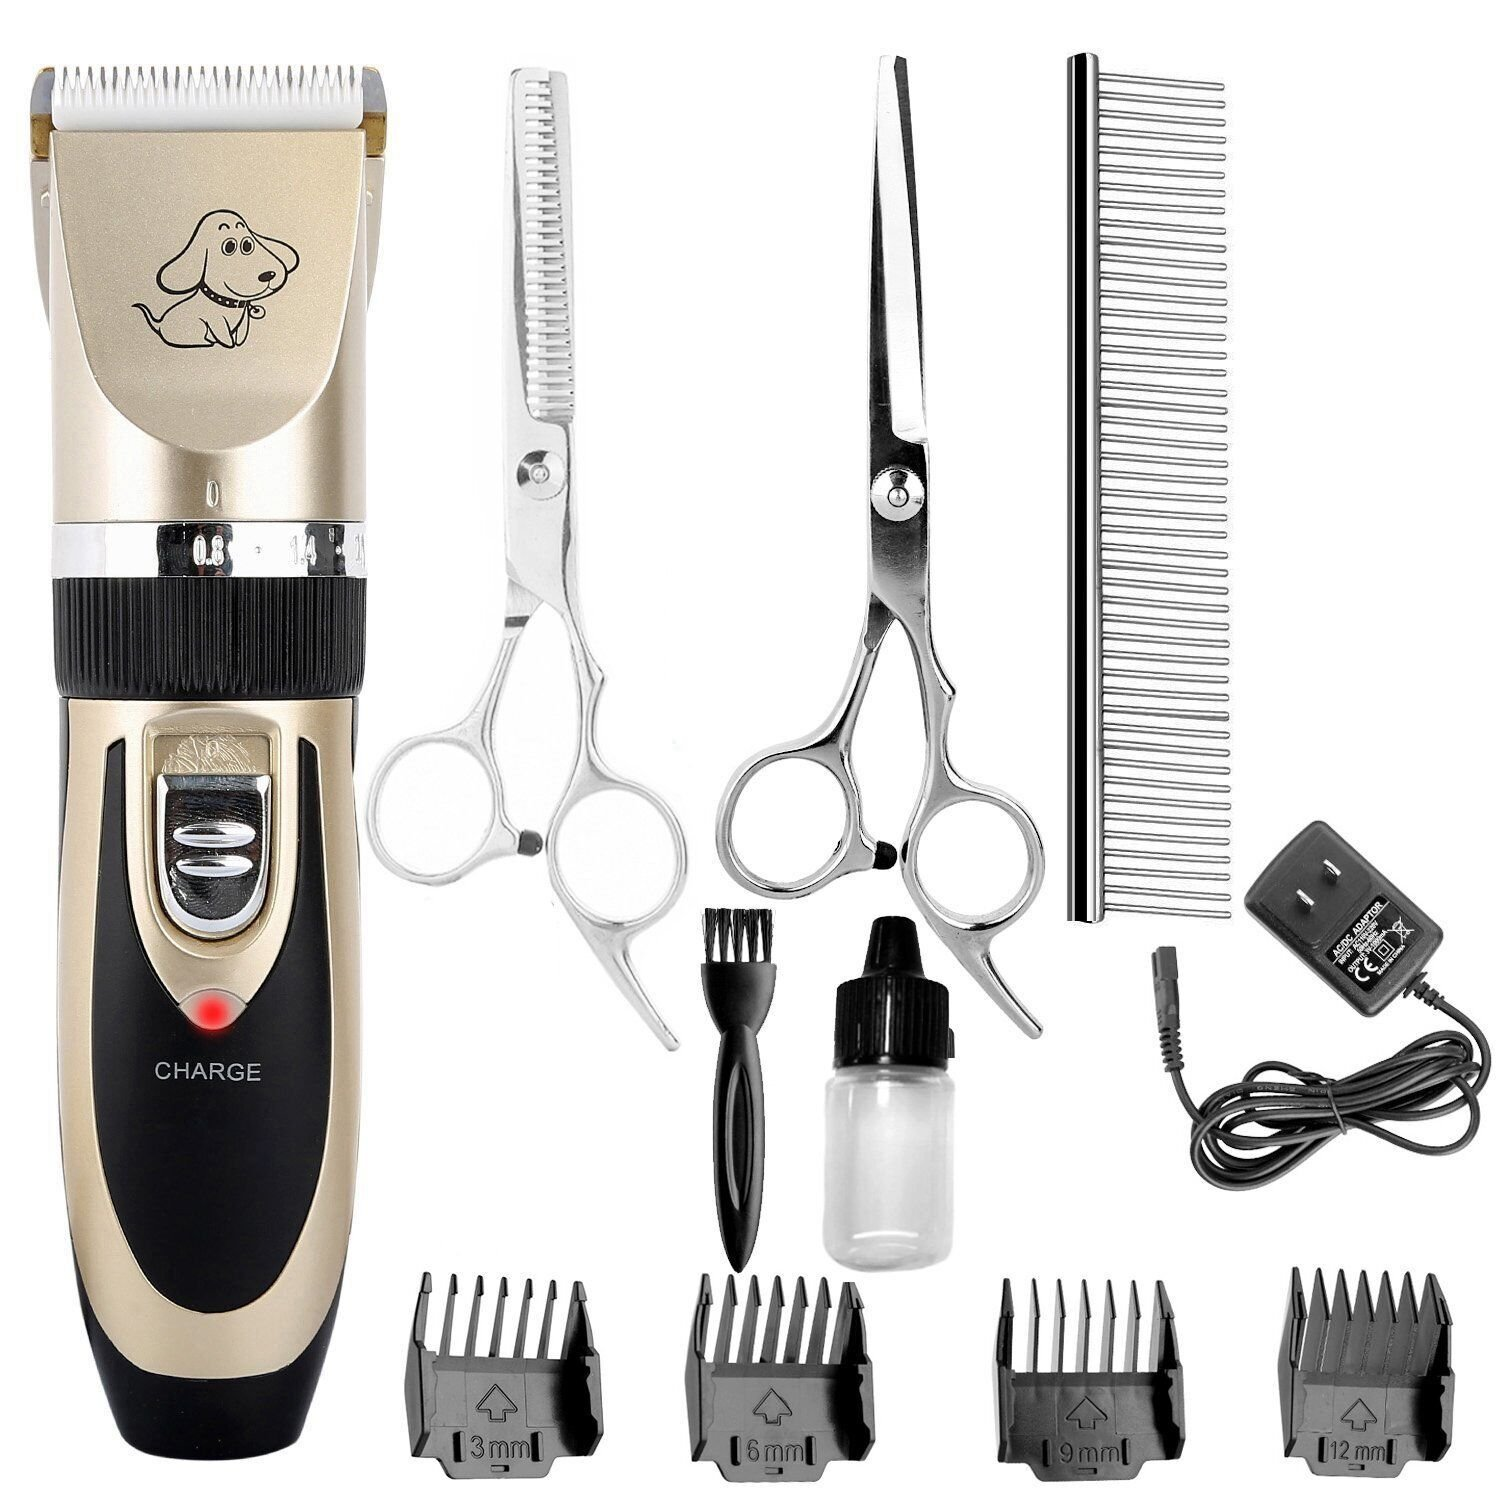 Pet Grooming Clippers, MLCINI Professional Low Noise Rechargeable Cat Dog clippers Cordless Cordless with Combs and Scissors